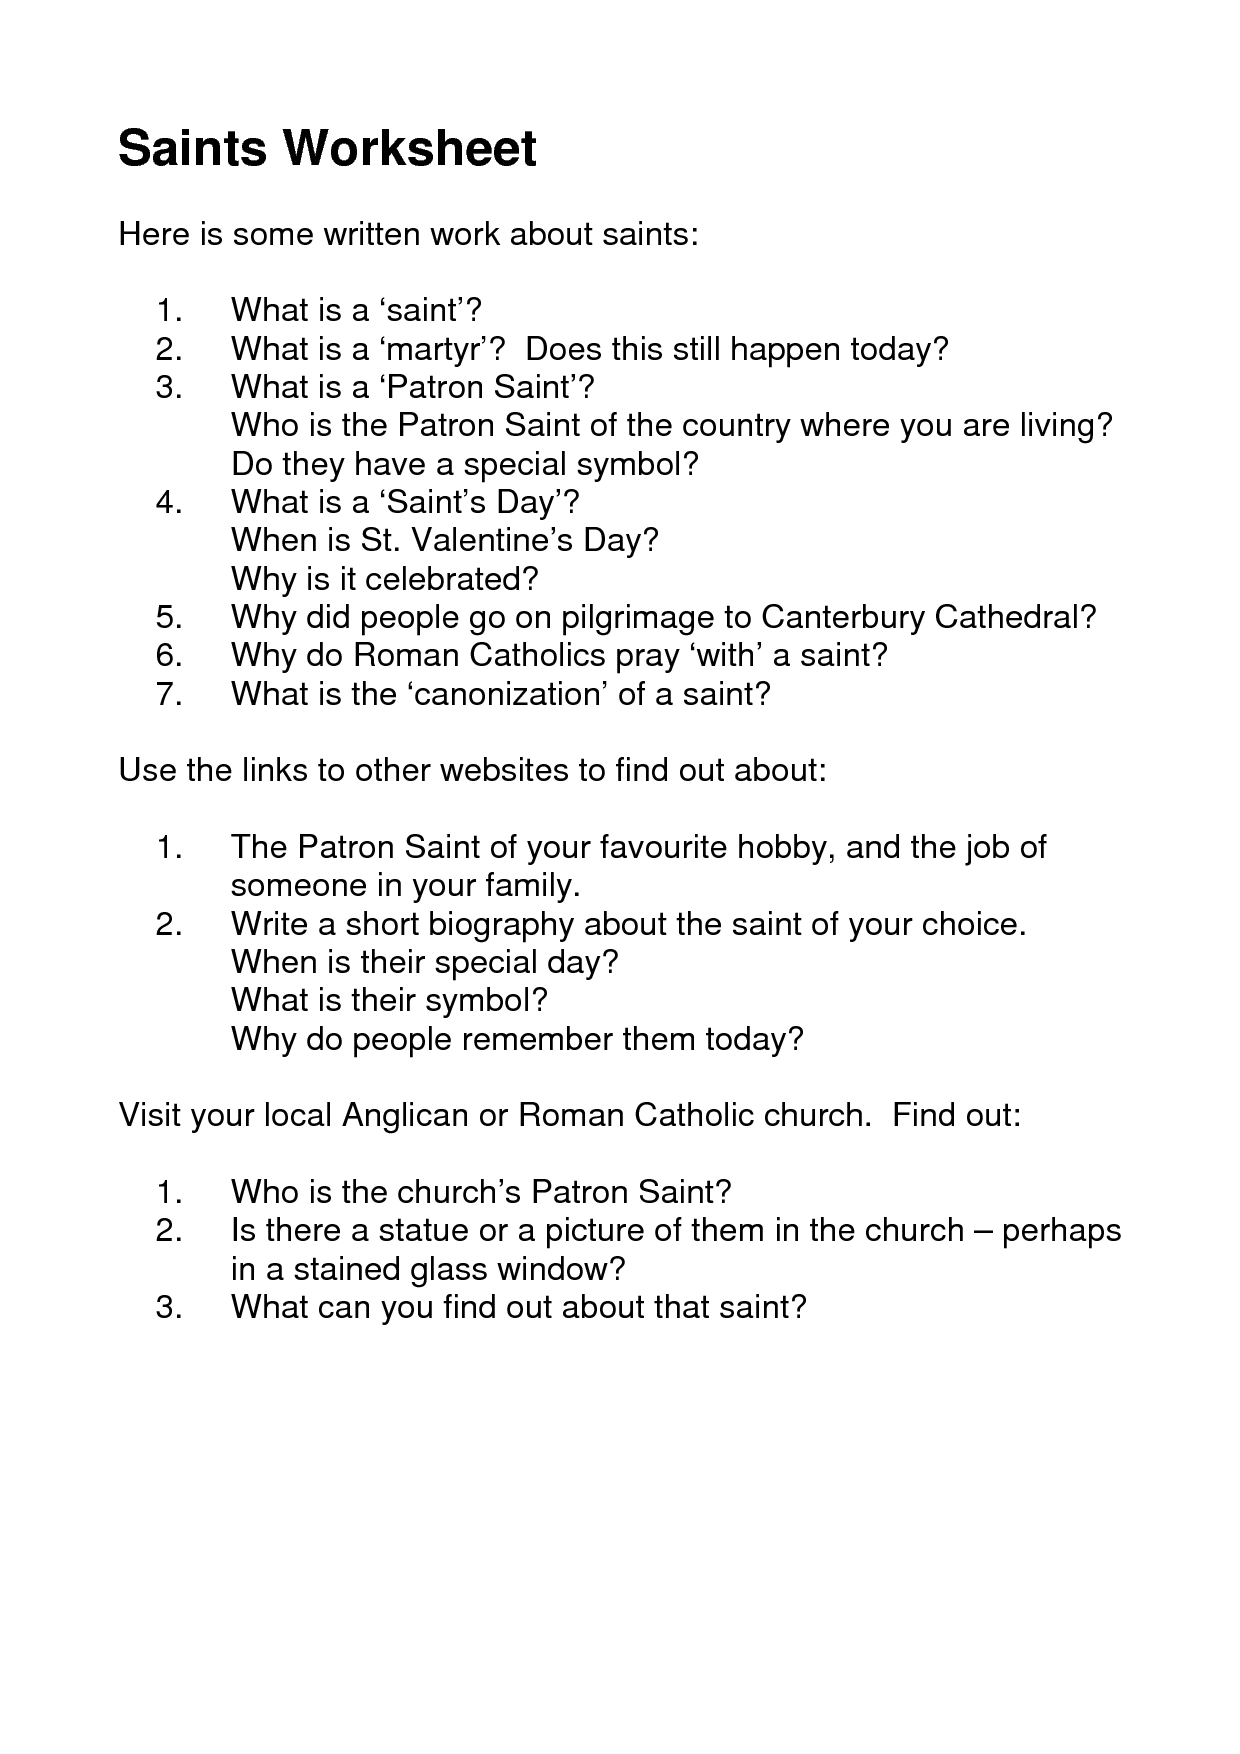 34 Awesome worksheets for all saints day images | Youth Ministry ...